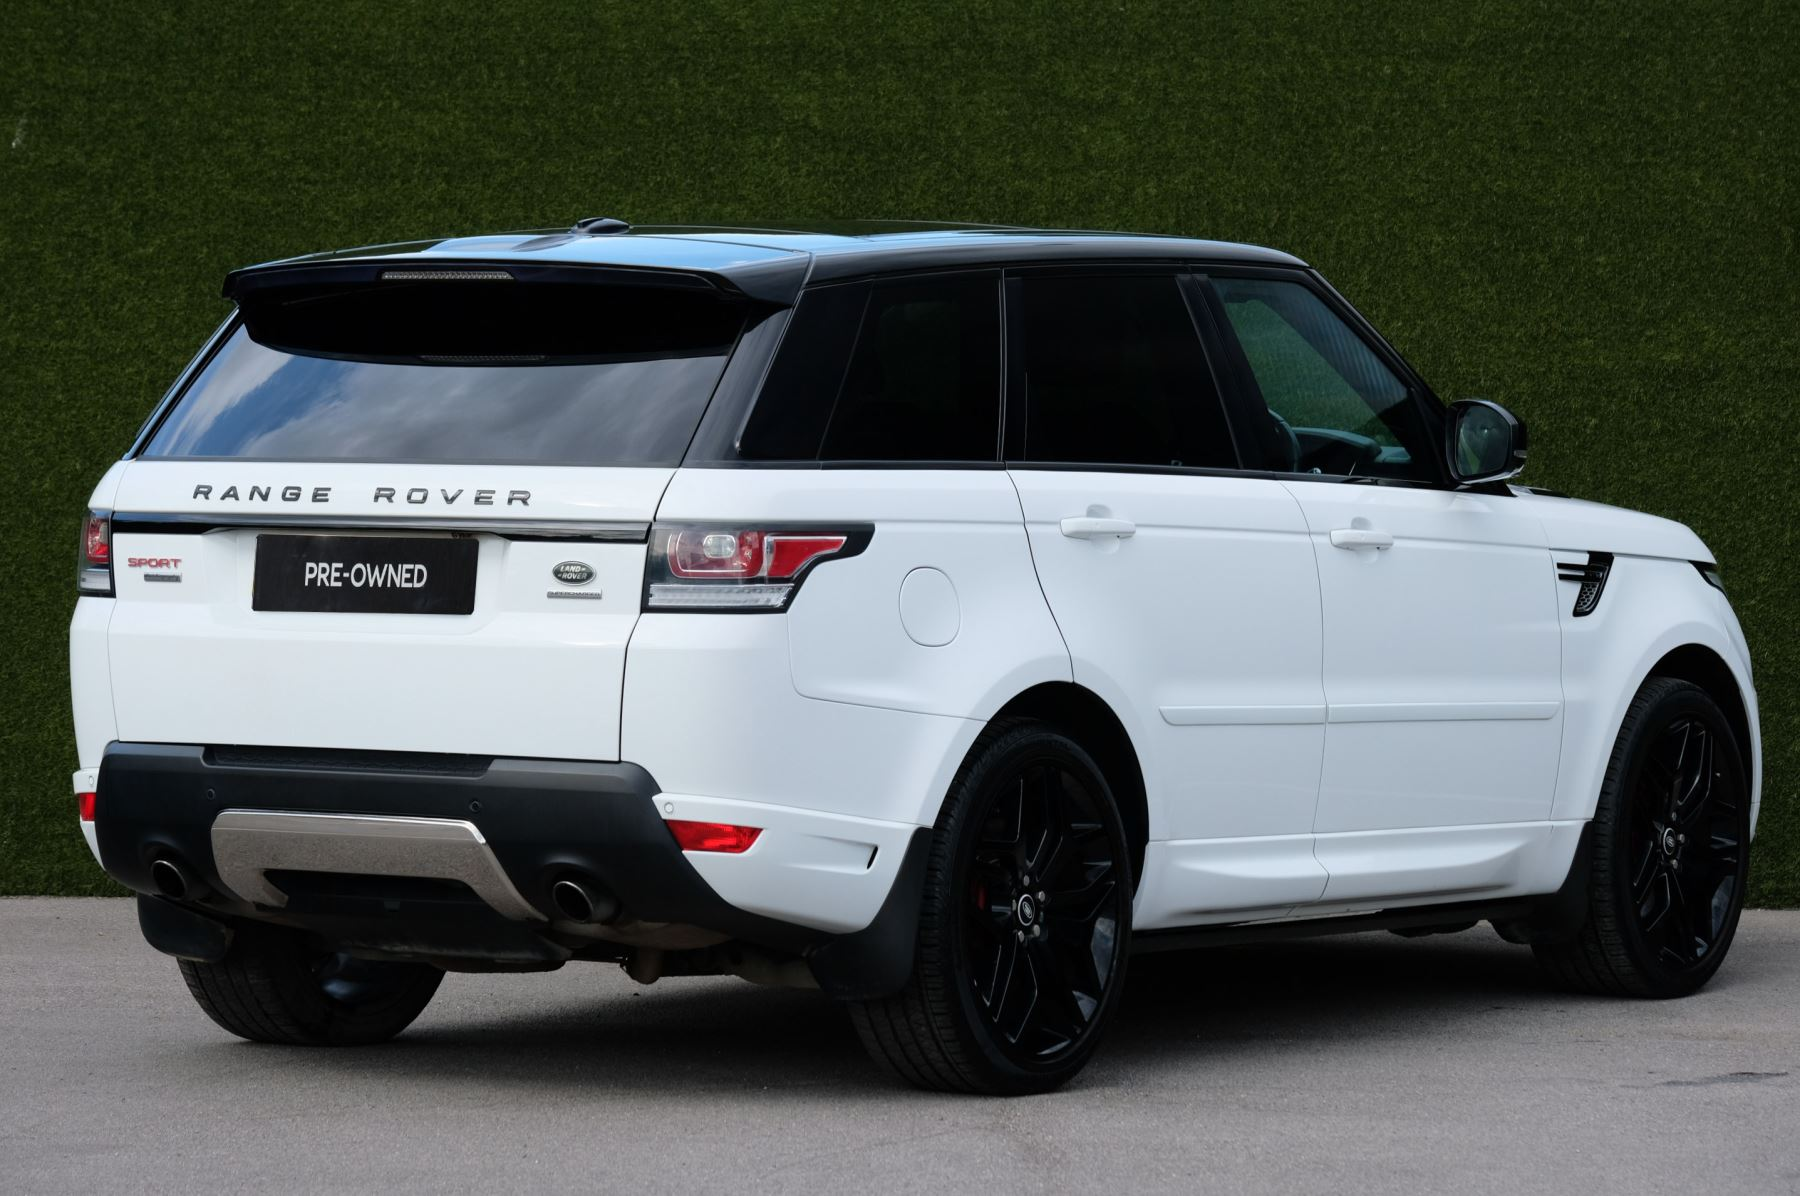 Land Rover Range Rover Sport 5.0 V8 S/C Autobiography Dynamic - 22 Inch Alloy Wheels - LED Signature Lights - 360 Camera image 6